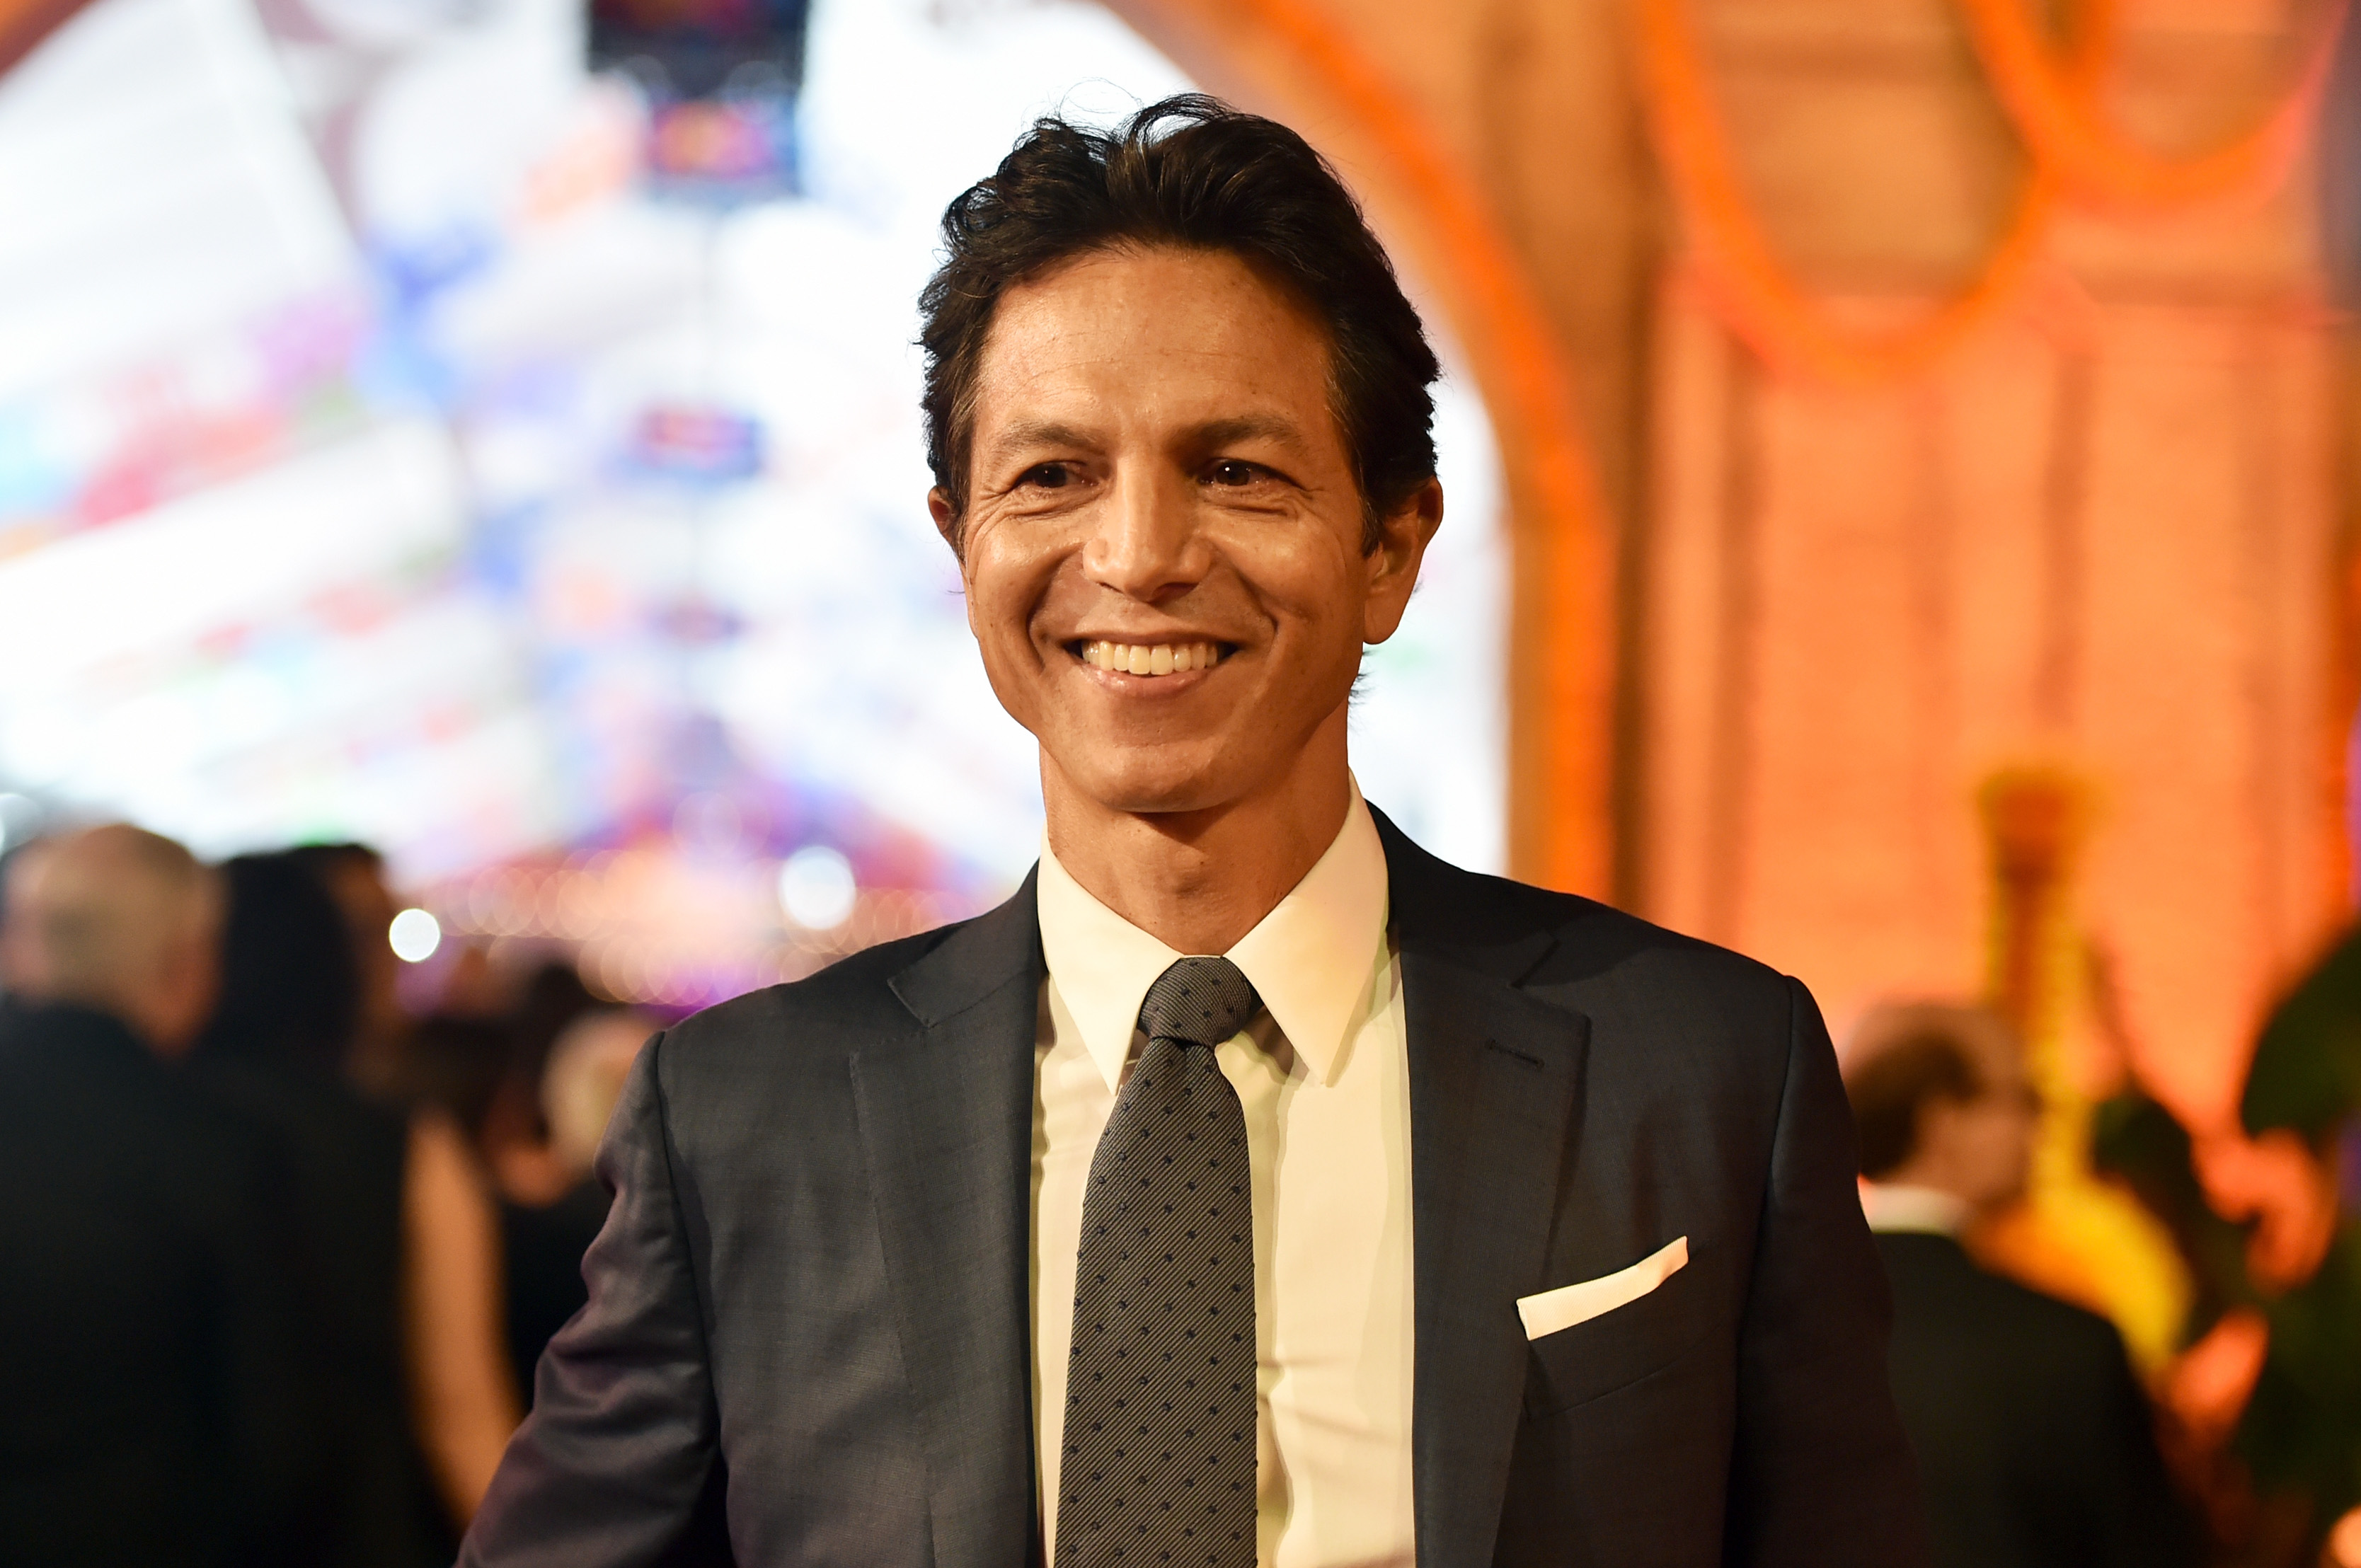 How Benjamin Bratt Changed the Representation of Peruvian-Americans on TV